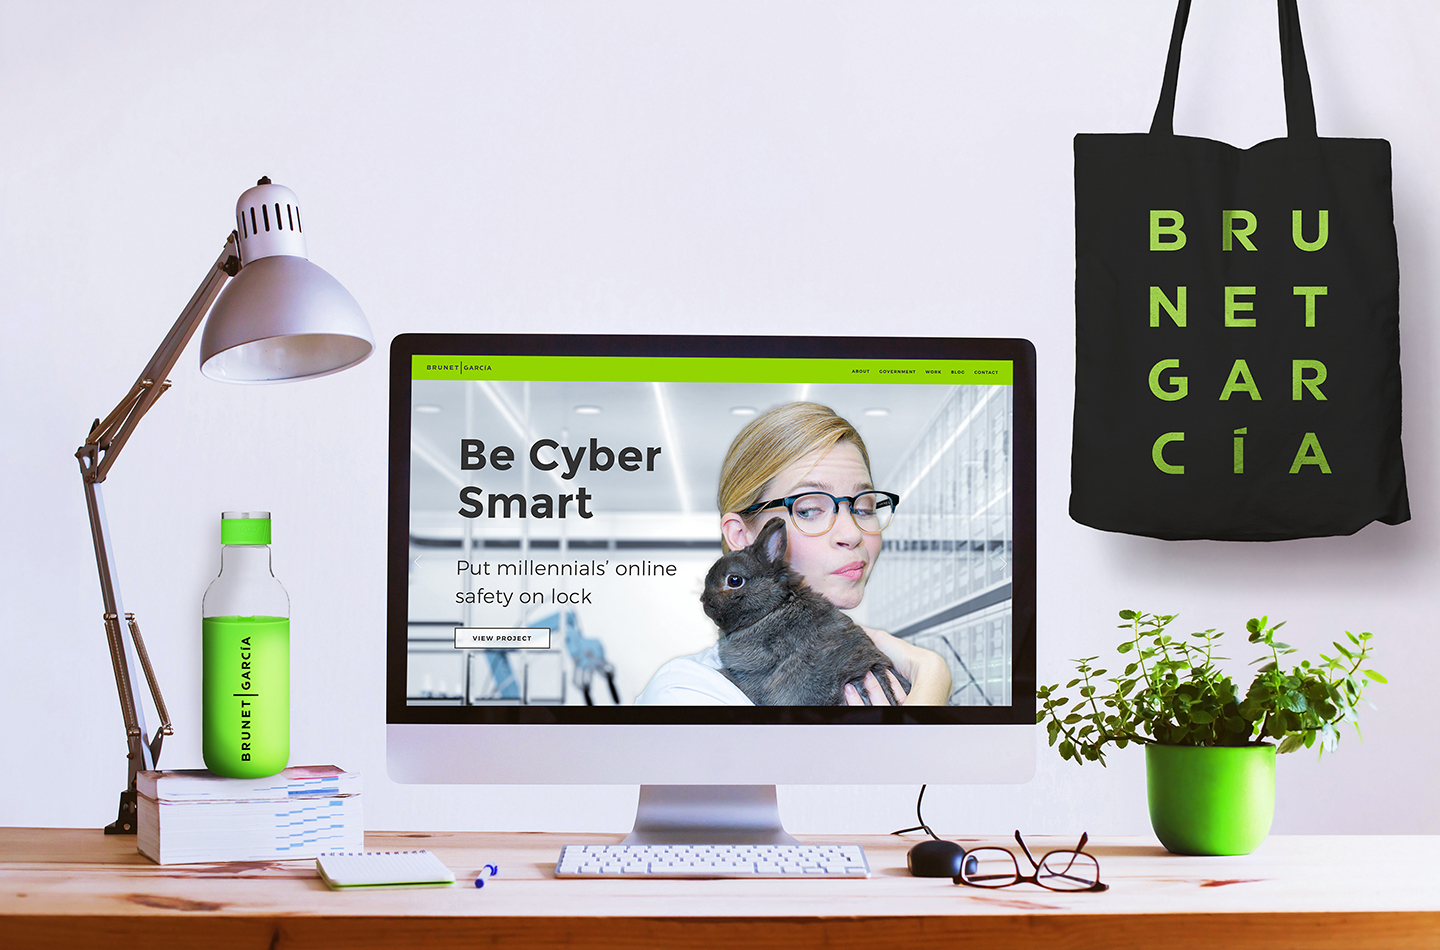 Desktop computer displays brunetgarcia.com with a green water bottle, lamp, plant, glasses, and Brunet-García bag.